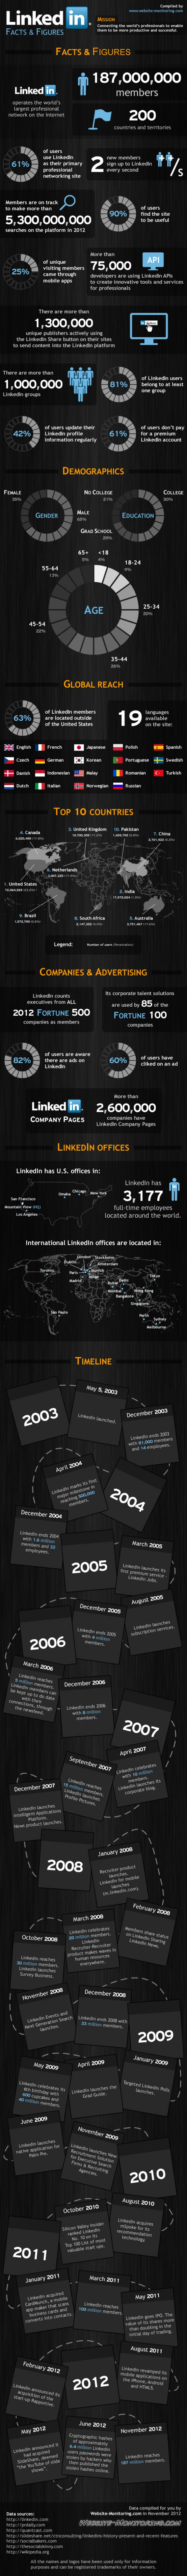 LinkedIn Facts & Figures